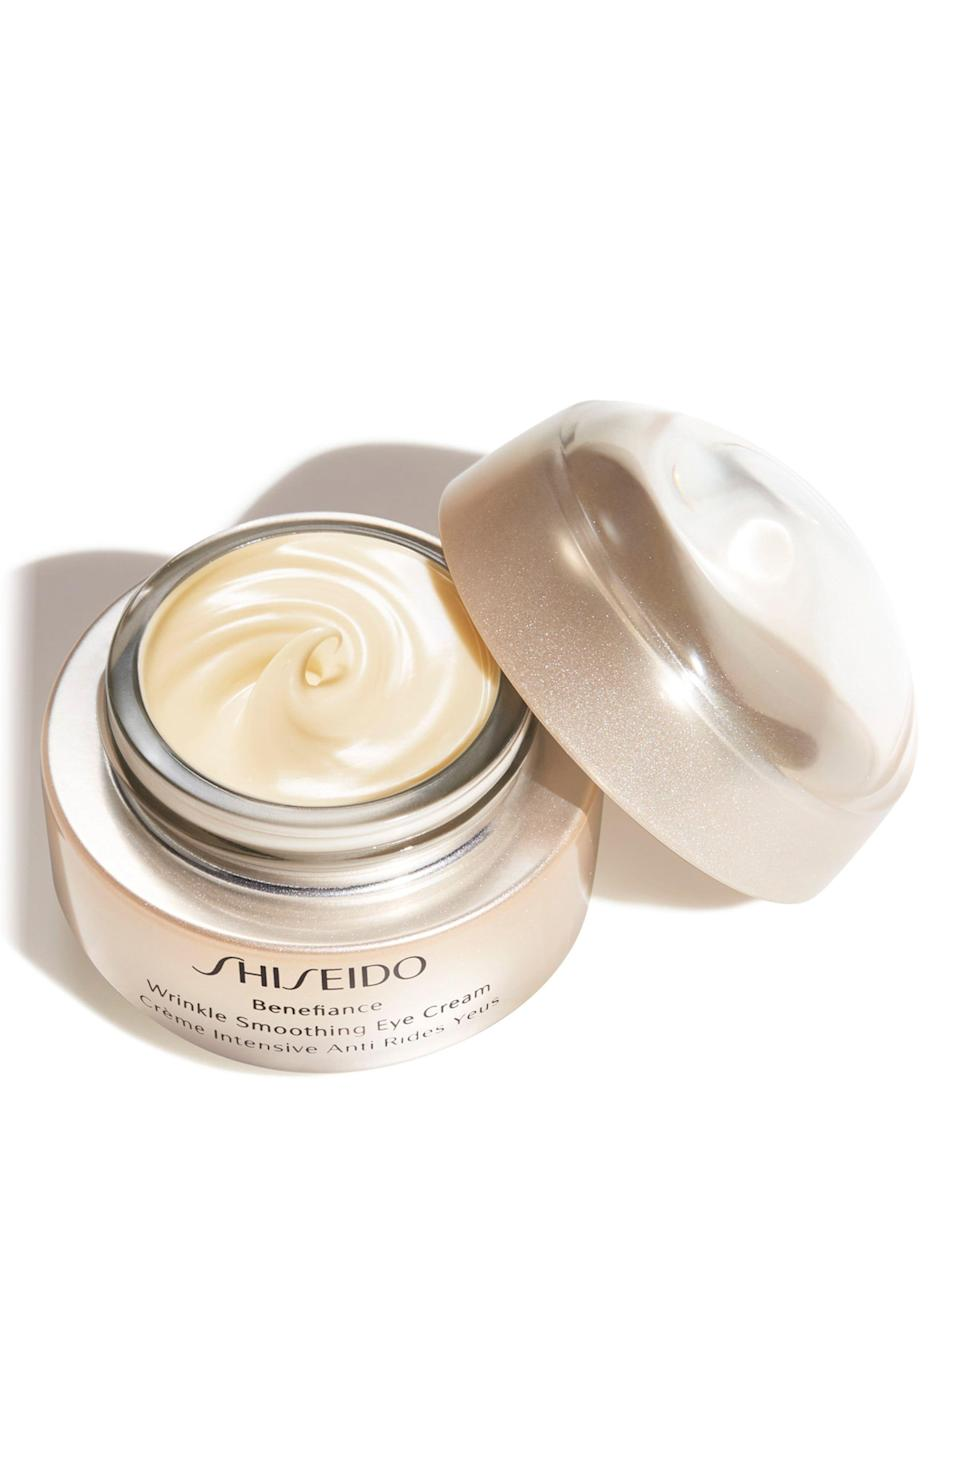 "<p><strong>SHISEIDO</strong></p><p>nordstrom.com</p><p><strong>$70.00</strong></p><p><a href=""https://go.redirectingat.com?id=74968X1596630&url=https%3A%2F%2Fshop.nordstrom.com%2Fs%2Fshiseido-benefiance-wrinkle-smoothing-eye-cream%2F5317192&sref=https%3A%2F%2Fwww.cosmopolitan.com%2Fstyle-beauty%2Ffashion%2Fg20108306%2Fbest-last-minute-mothers-day-gifts%2F"" rel=""nofollow noopener"" target=""_blank"" data-ylk=""slk:Shop Now"" class=""link rapid-noclick-resp"">Shop Now</a></p><p>Her under-eye area will thank you when she uses this super-lightweight eye cream. It'll moisturize, minimize fine lines, and reduce puffiness.</p>"